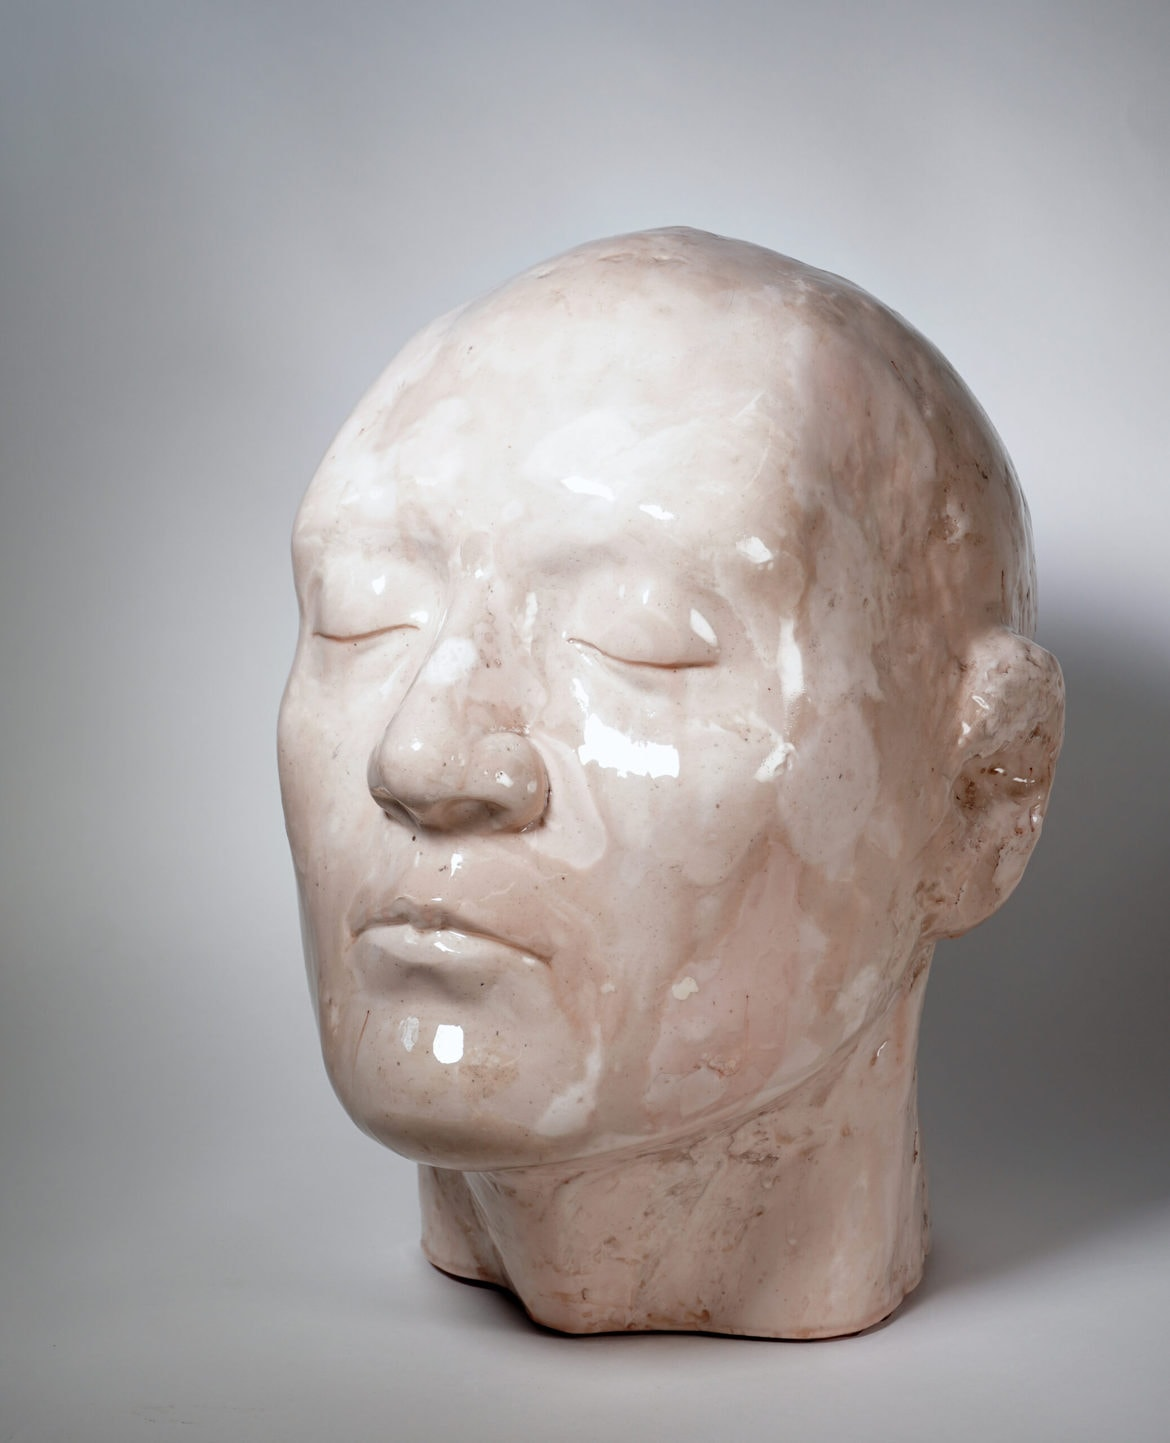 'it came at some cost', 2001-2020, plaster, resin, mixed media, 39 x 37 x 30 cm